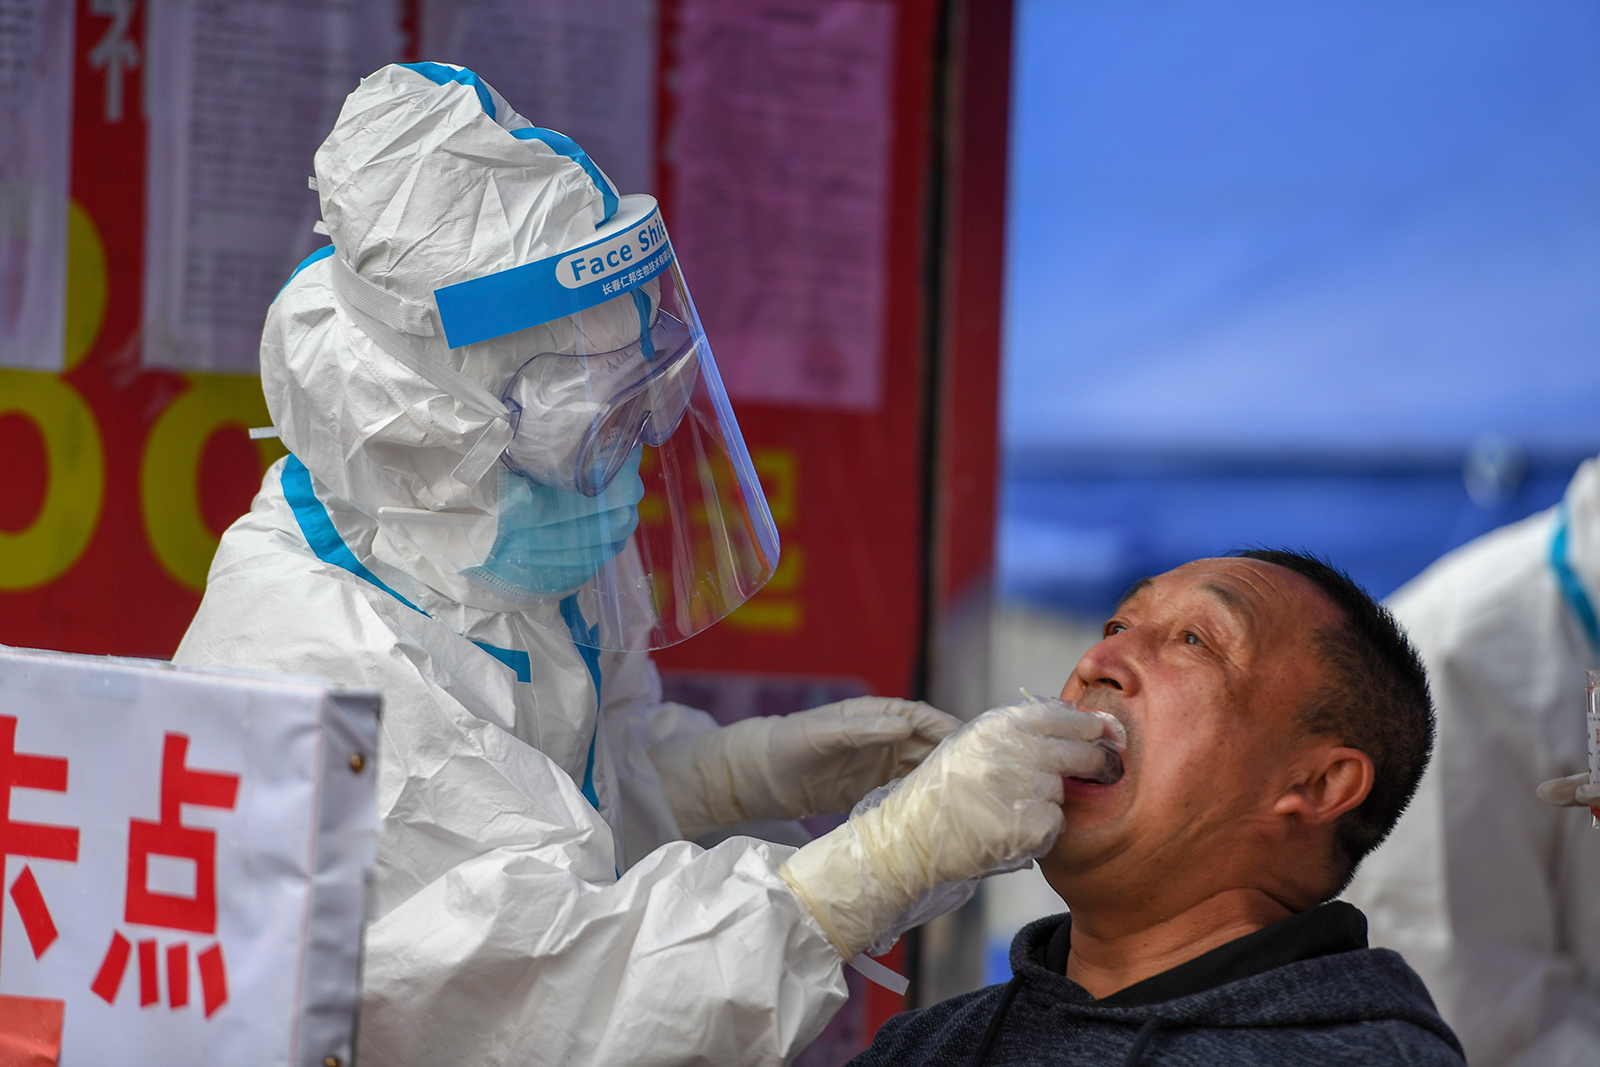 A medical worker collects sample for Covid-19 testing at the Tongji community in Shulan, China on May 17.